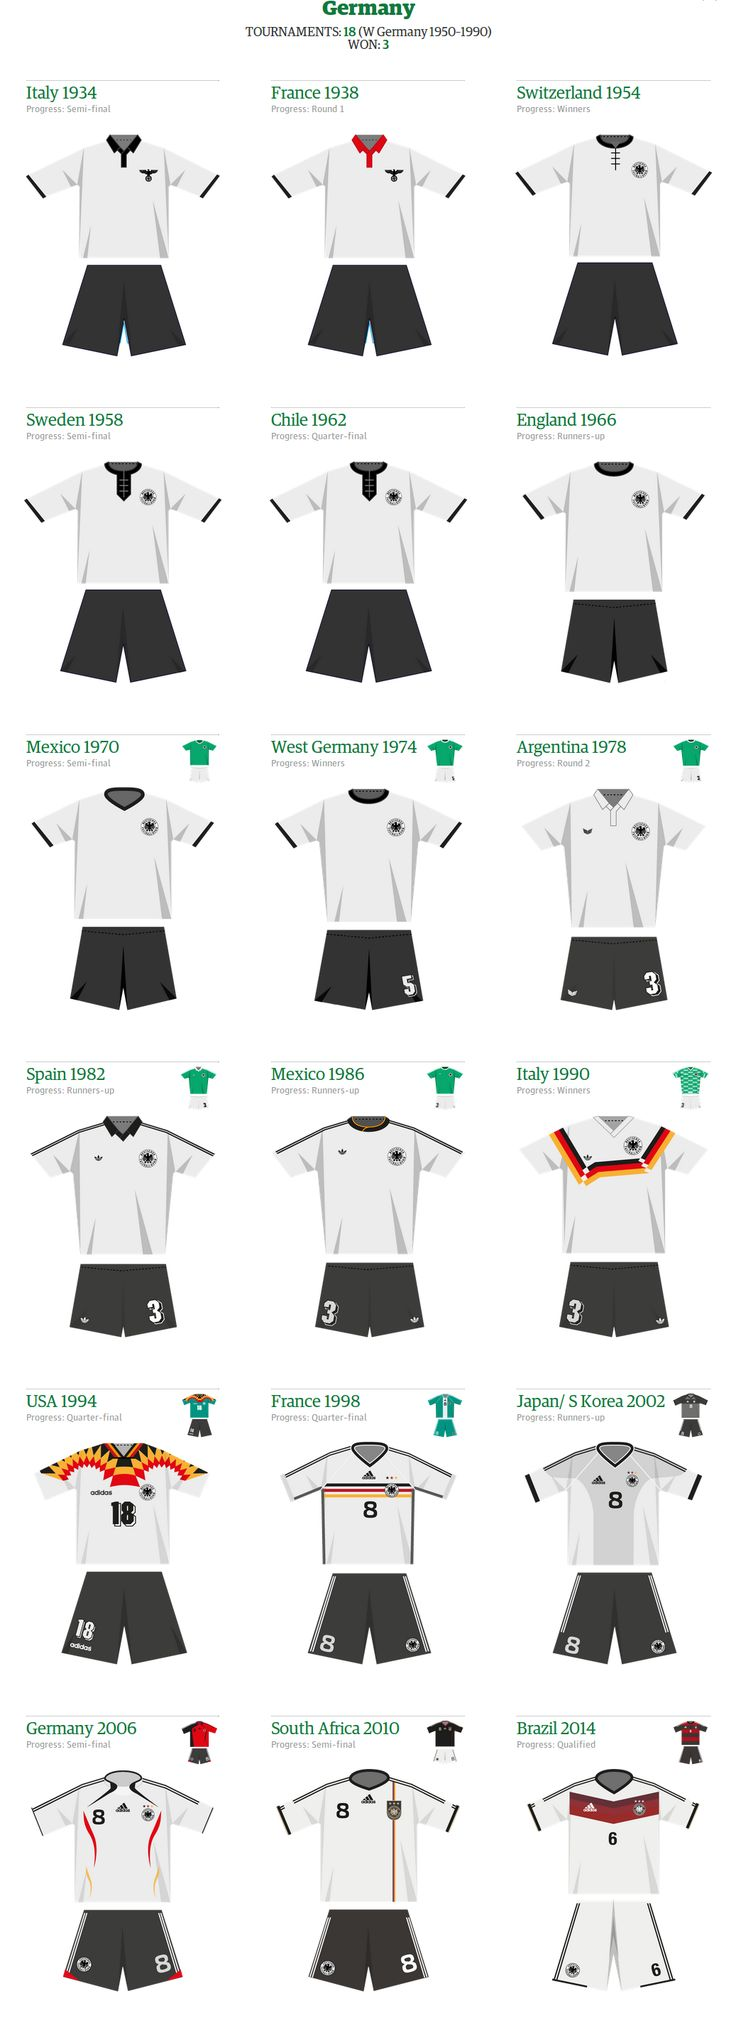 All of Germany's World Cup kits.